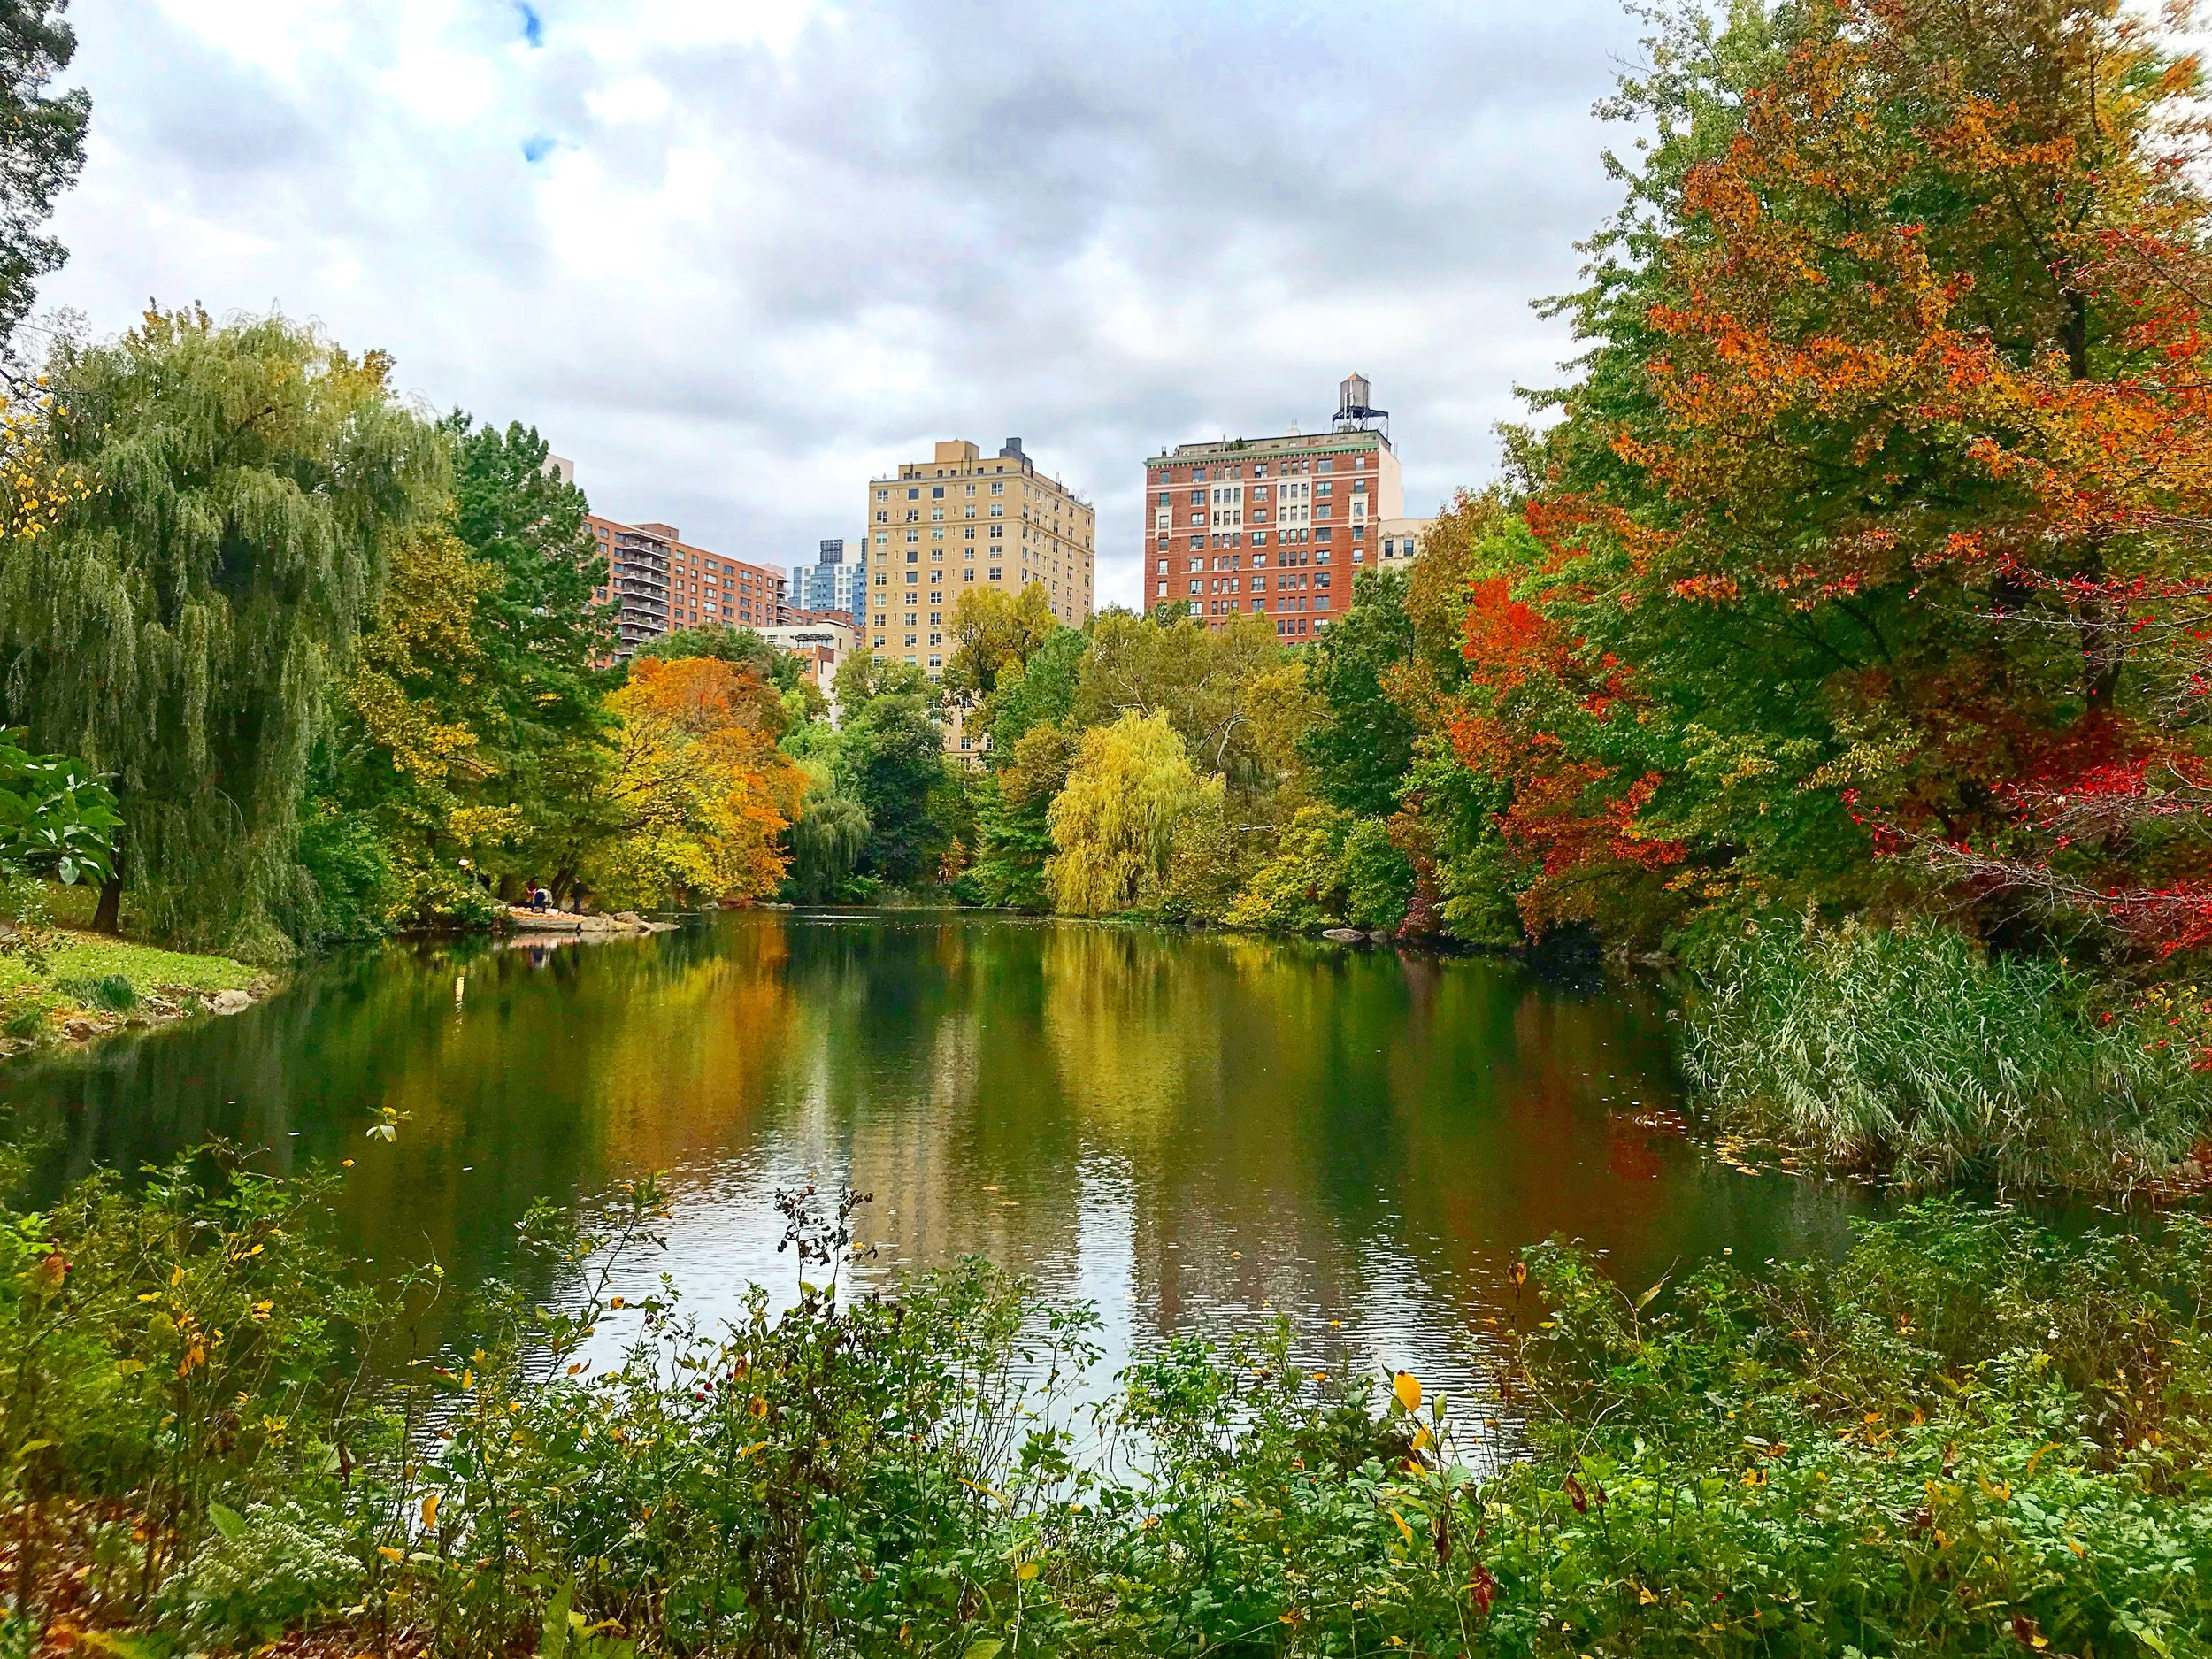 Central Park - The Pool, 100th Street on the West Side - October 26th 2017